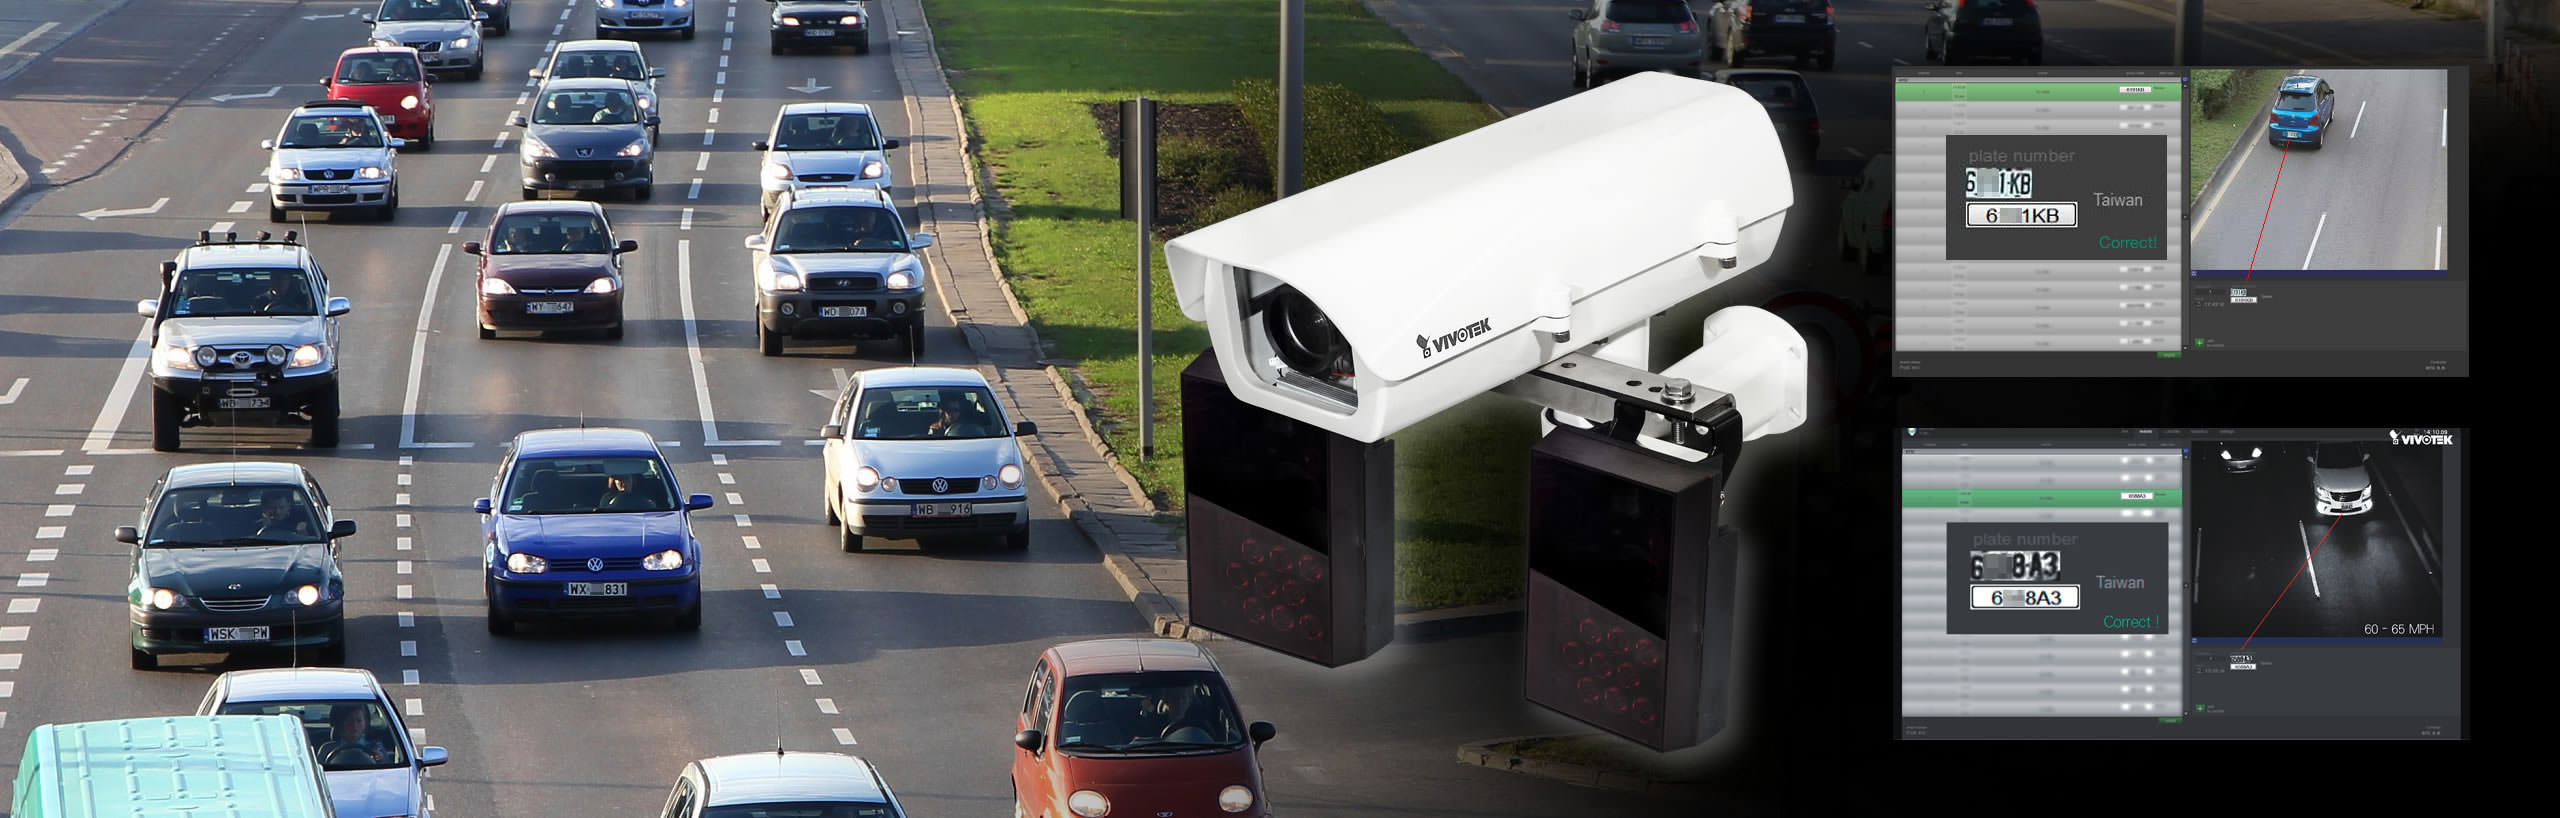 VIVOTEK Launches Its Latest License Plate Capture Solution IP816A-LPC, Real-Time Surveillance for Traffic Monitoring